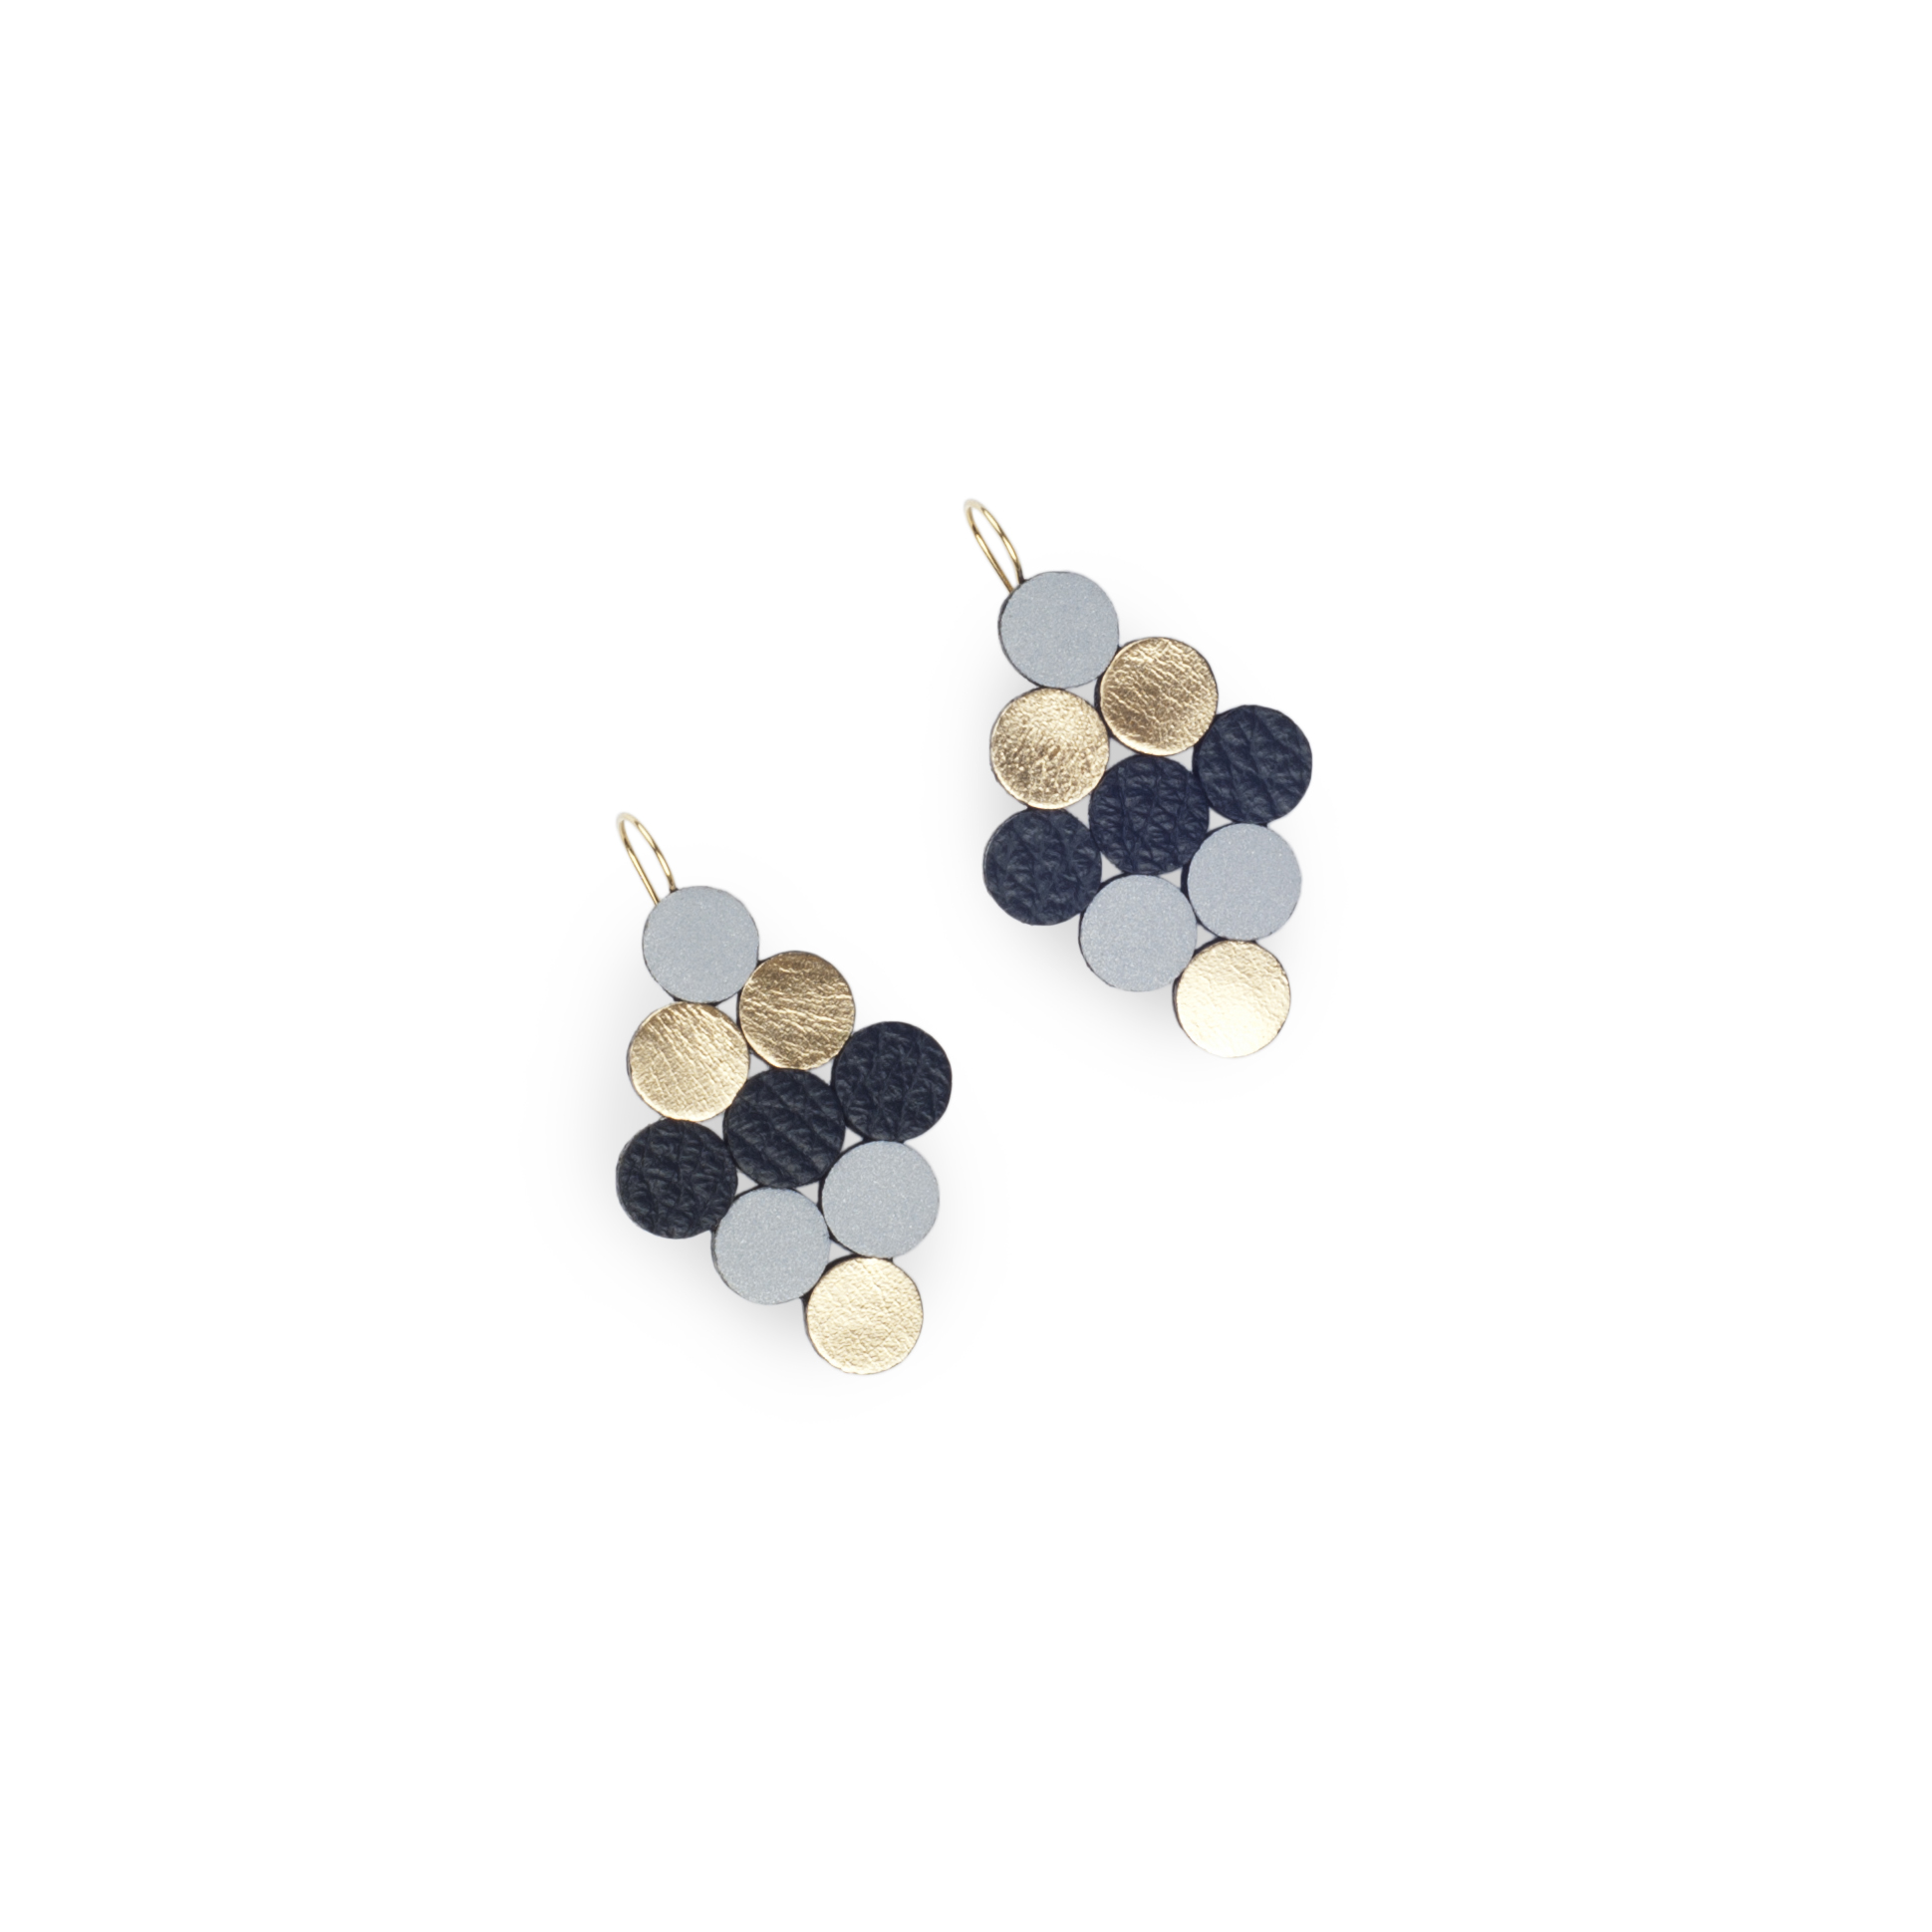 leather earrings with reflective details | Eloise